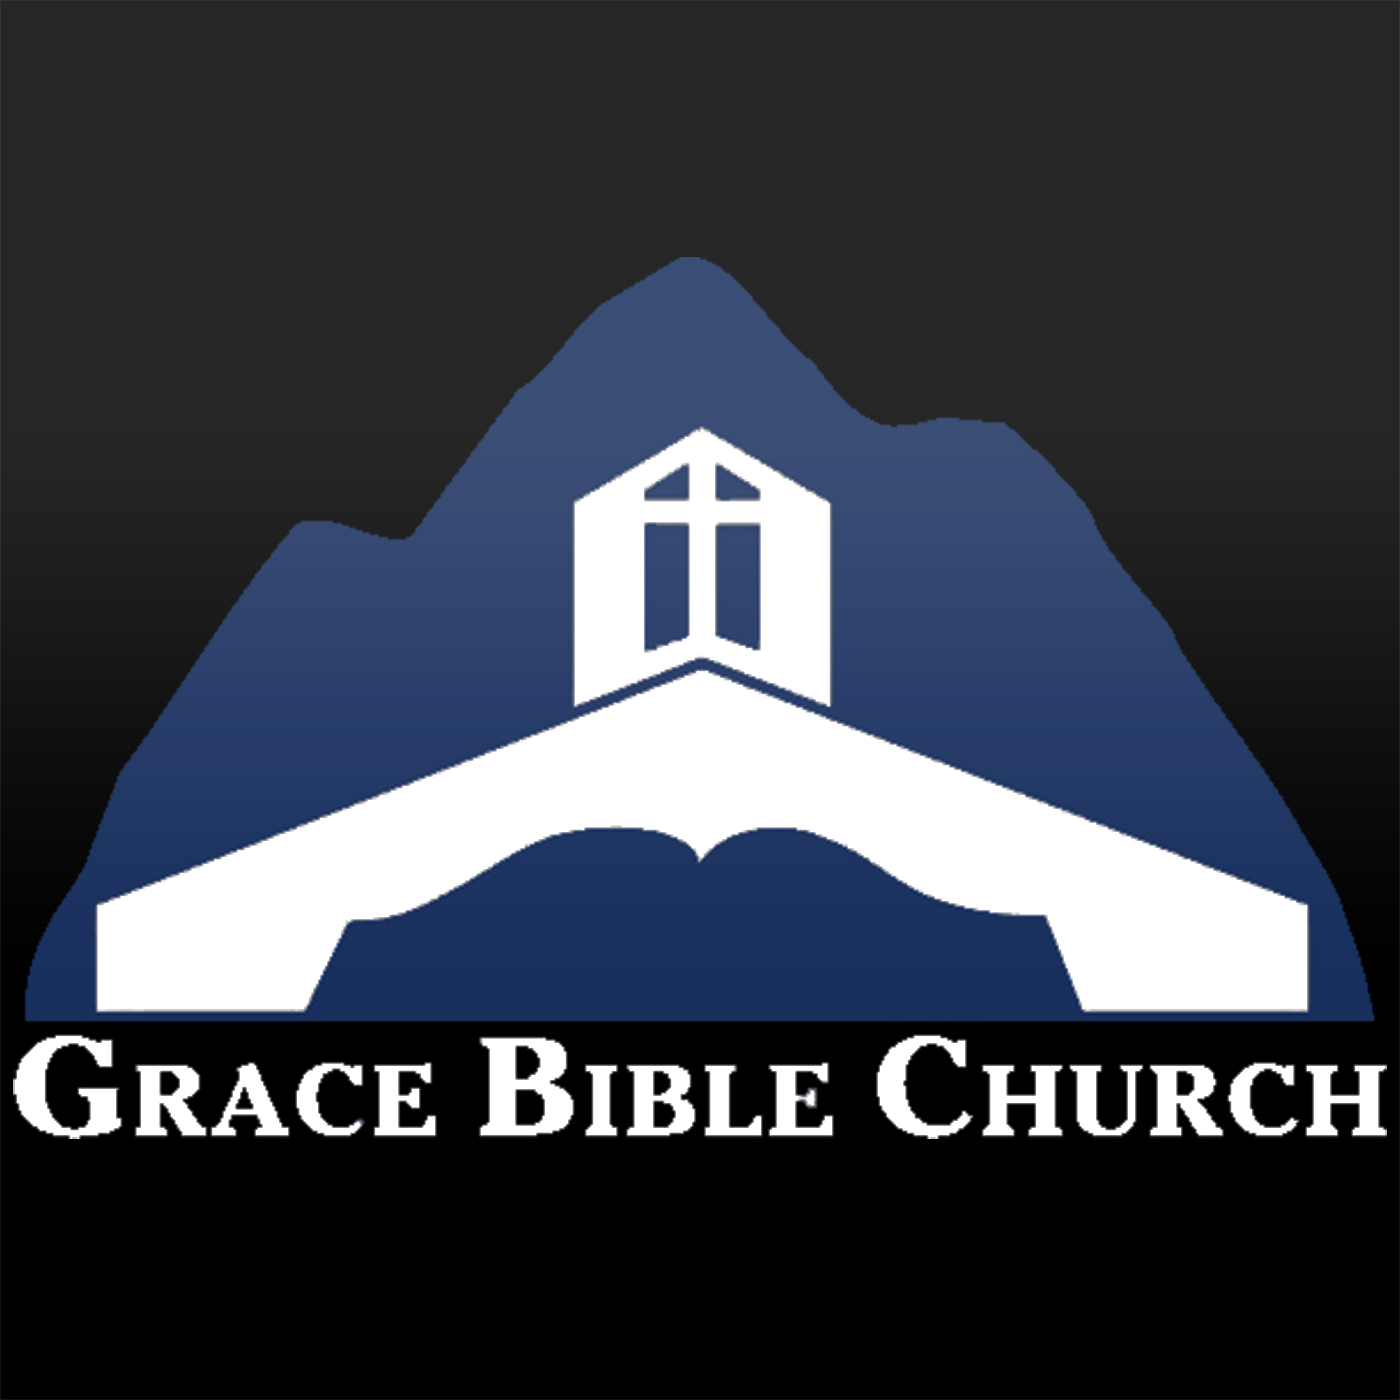 Grace Bible Church, Bozeman, MT